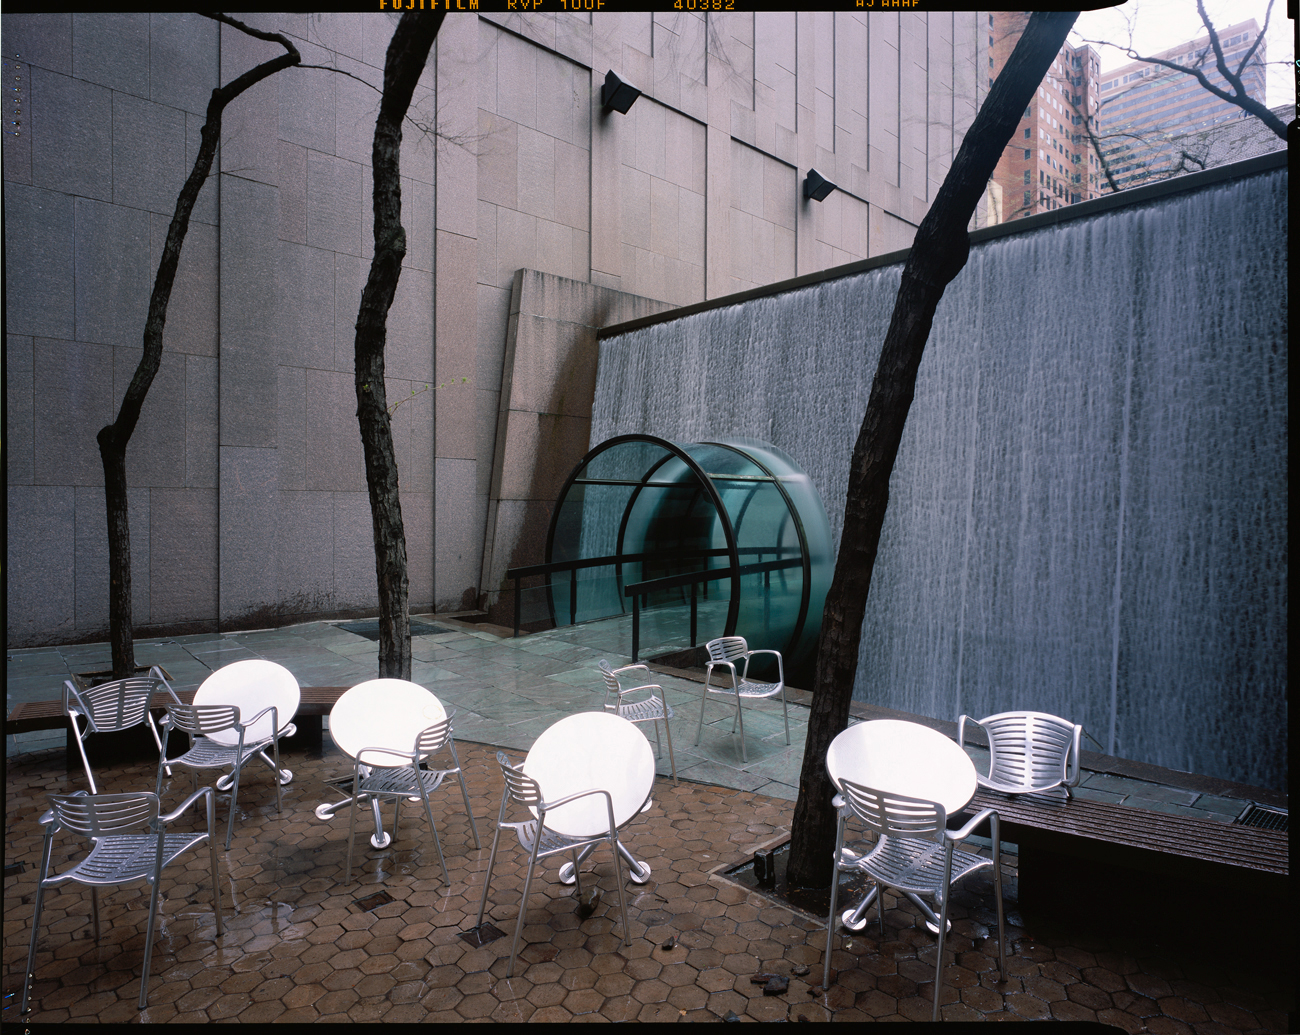 Cafe tables, East 49th Street, New York City, 2002